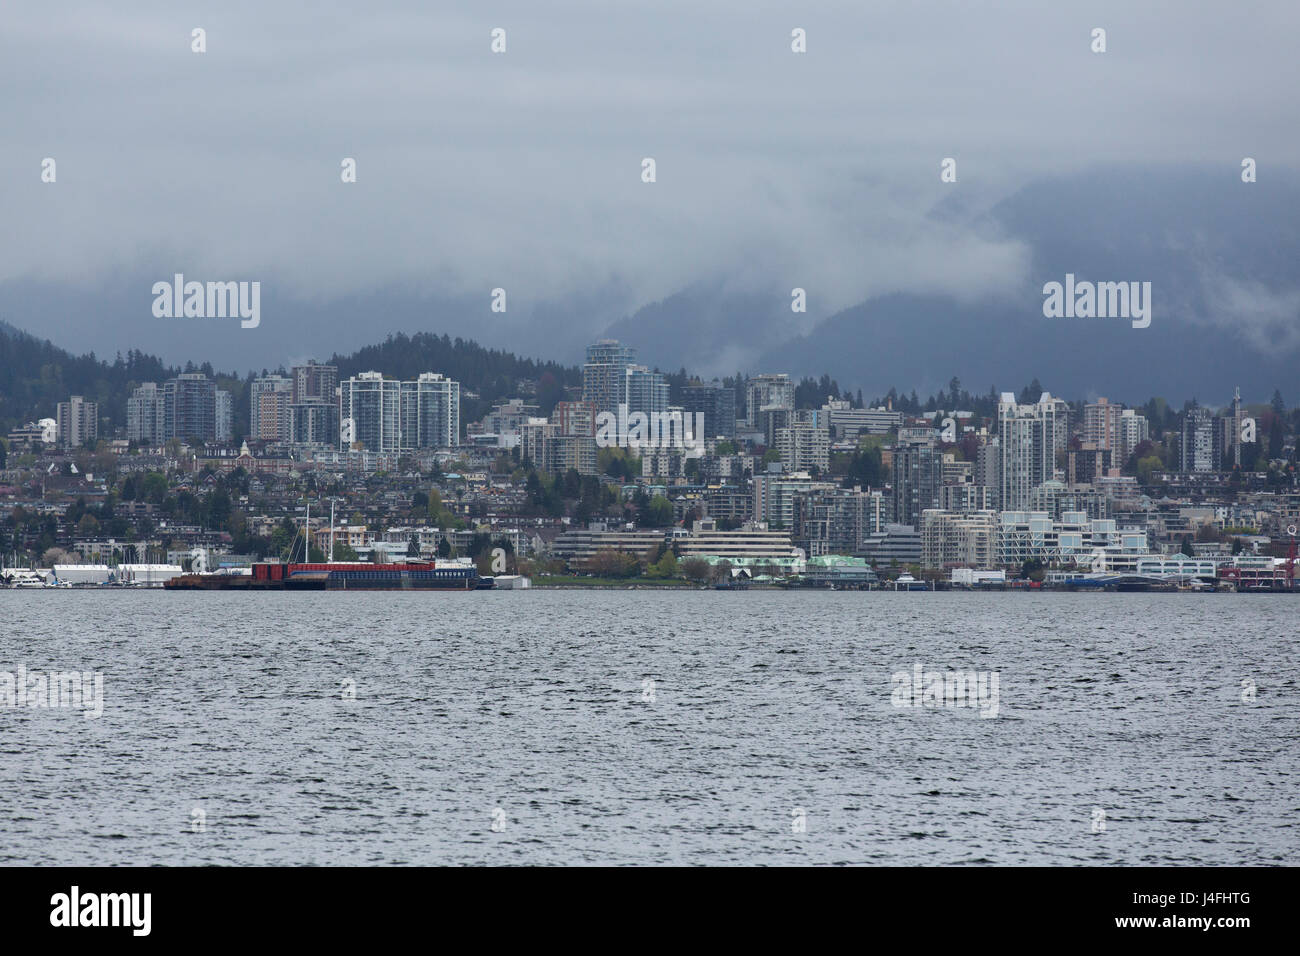 An overcast day in Vancouver, Canada. Clouds hang low over buildings in North Vancouver. - Stock Image